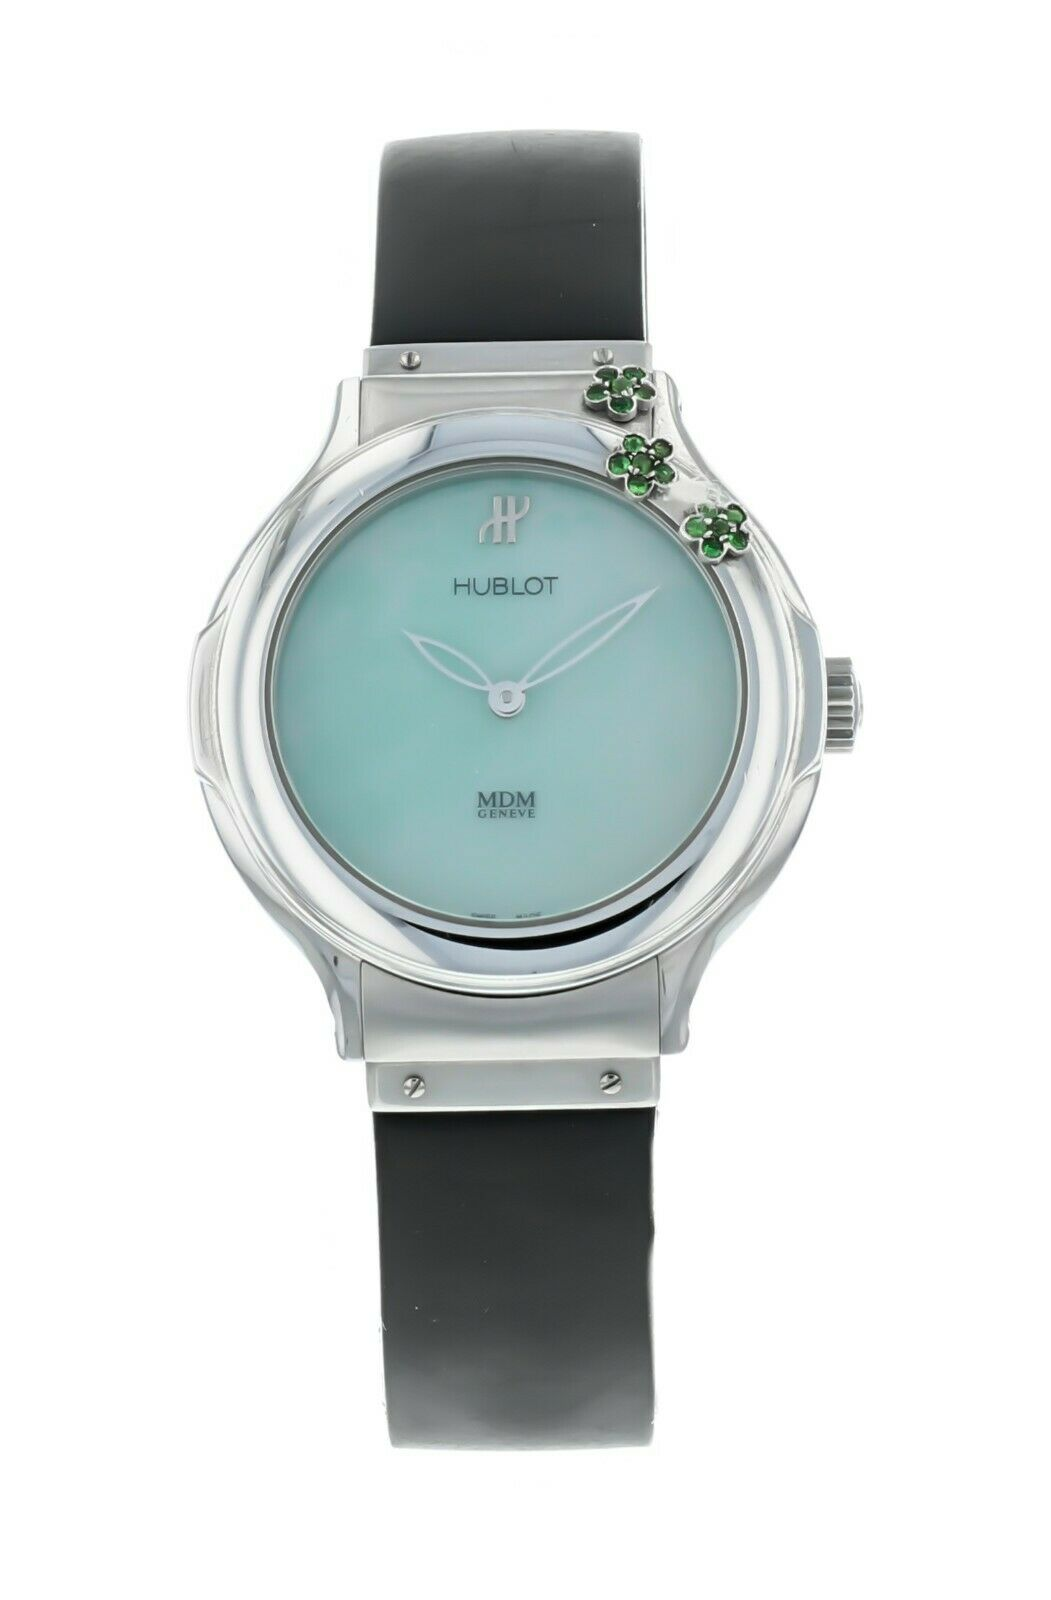 Hublot Classic Flowers MDM 32.5mm Ladies Quartz Watch 1420.TUR.1